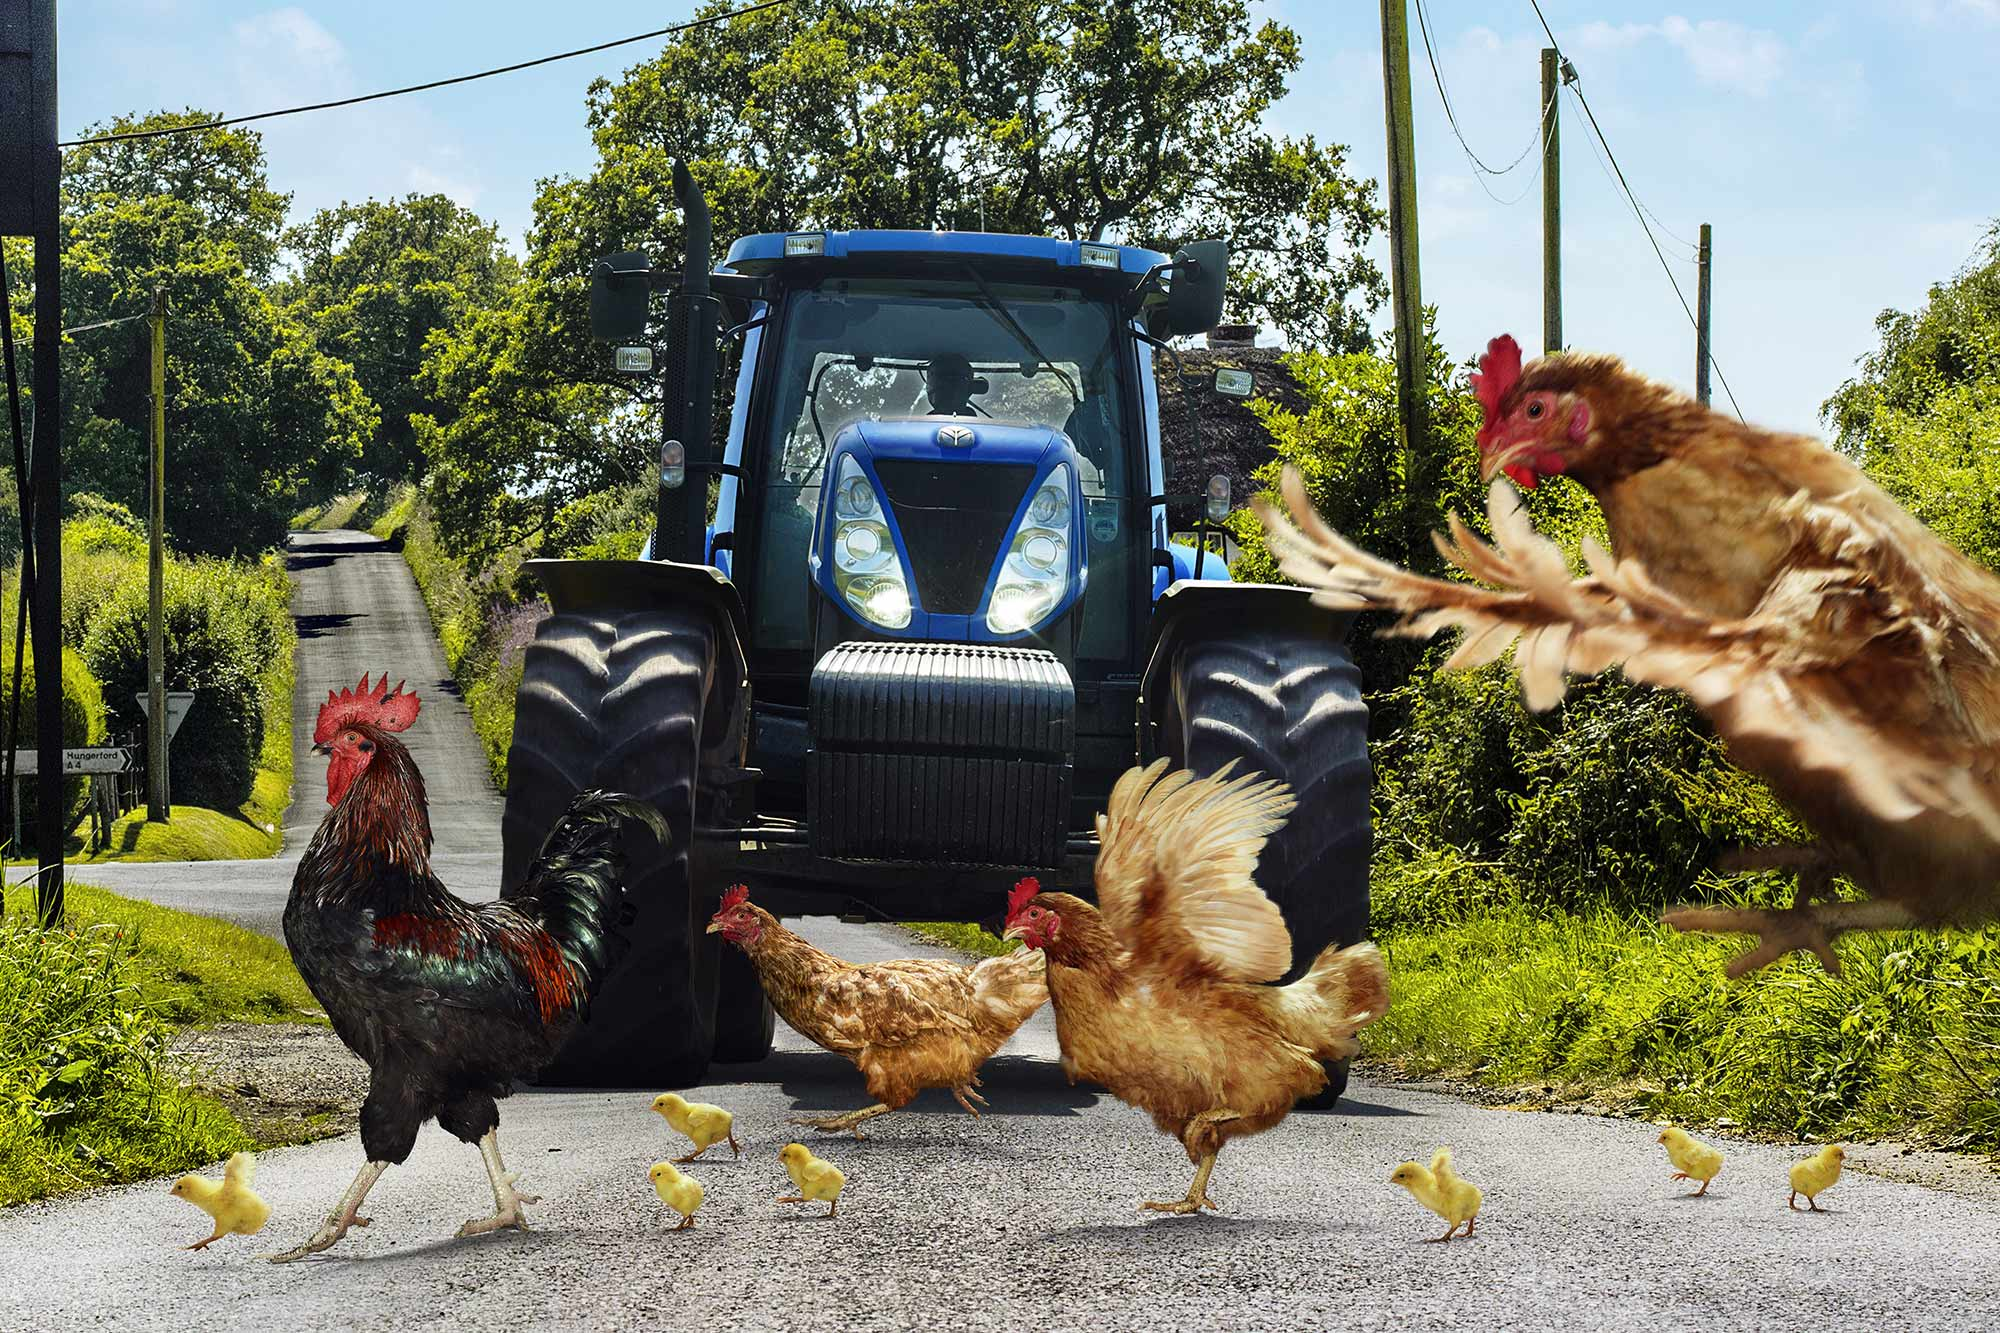 Animal Photo Chickens and Tractor